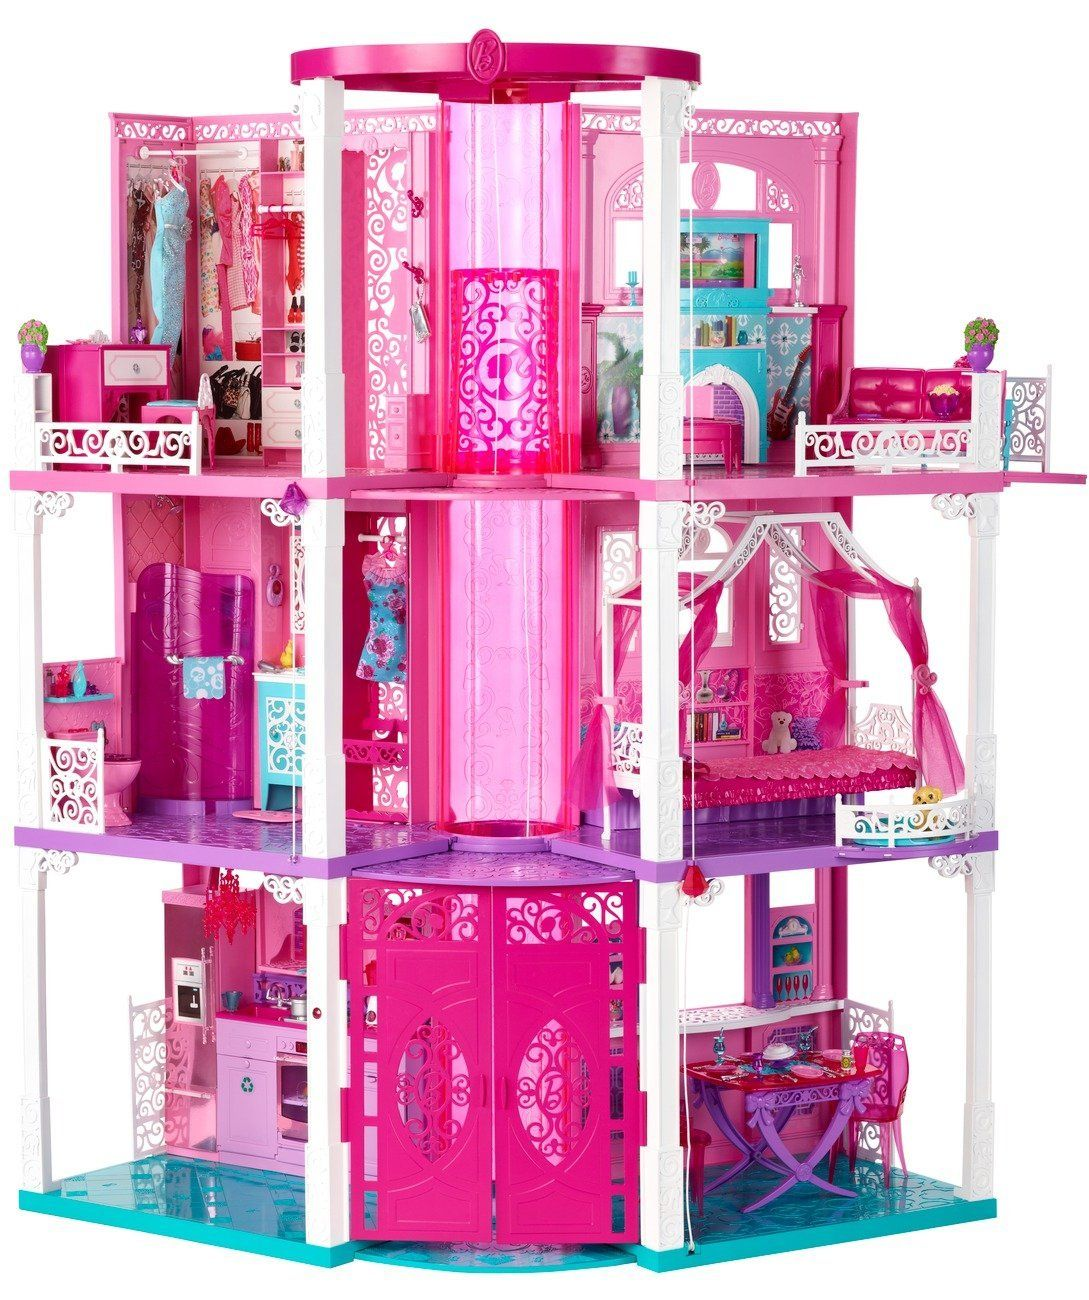 My Daughter Loves Her Barbie 3 Story Dream House This